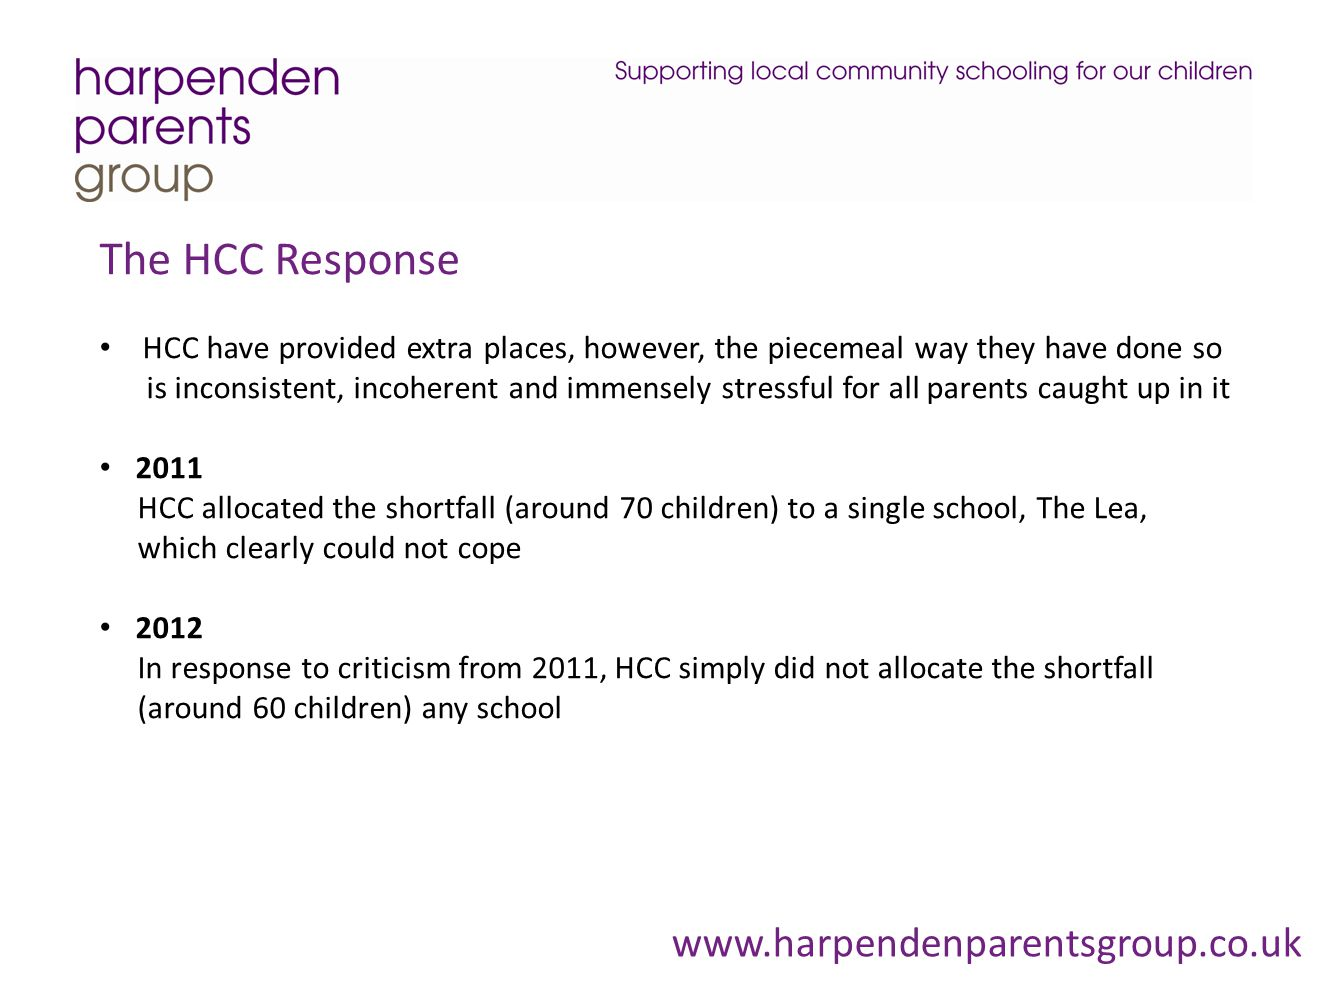 The HCC Response HCC have provided extra places, however, the piecemeal way they have done so is inconsistent, incoherent and immensely stressful for